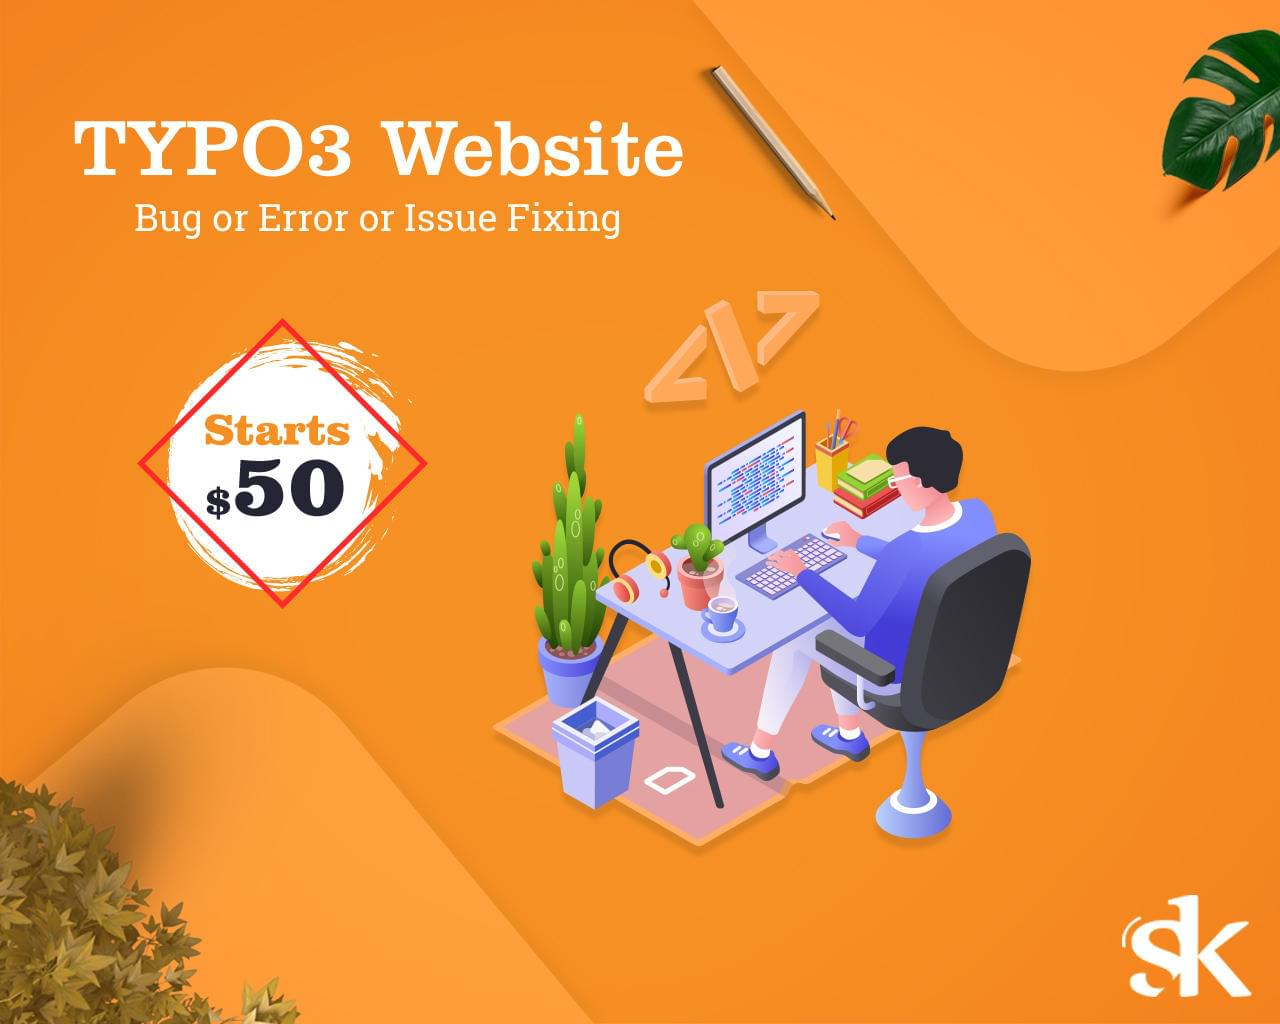 TYPO3 Website Bug or Error or Issue Fixing by SK-Web-Solutions - 115831